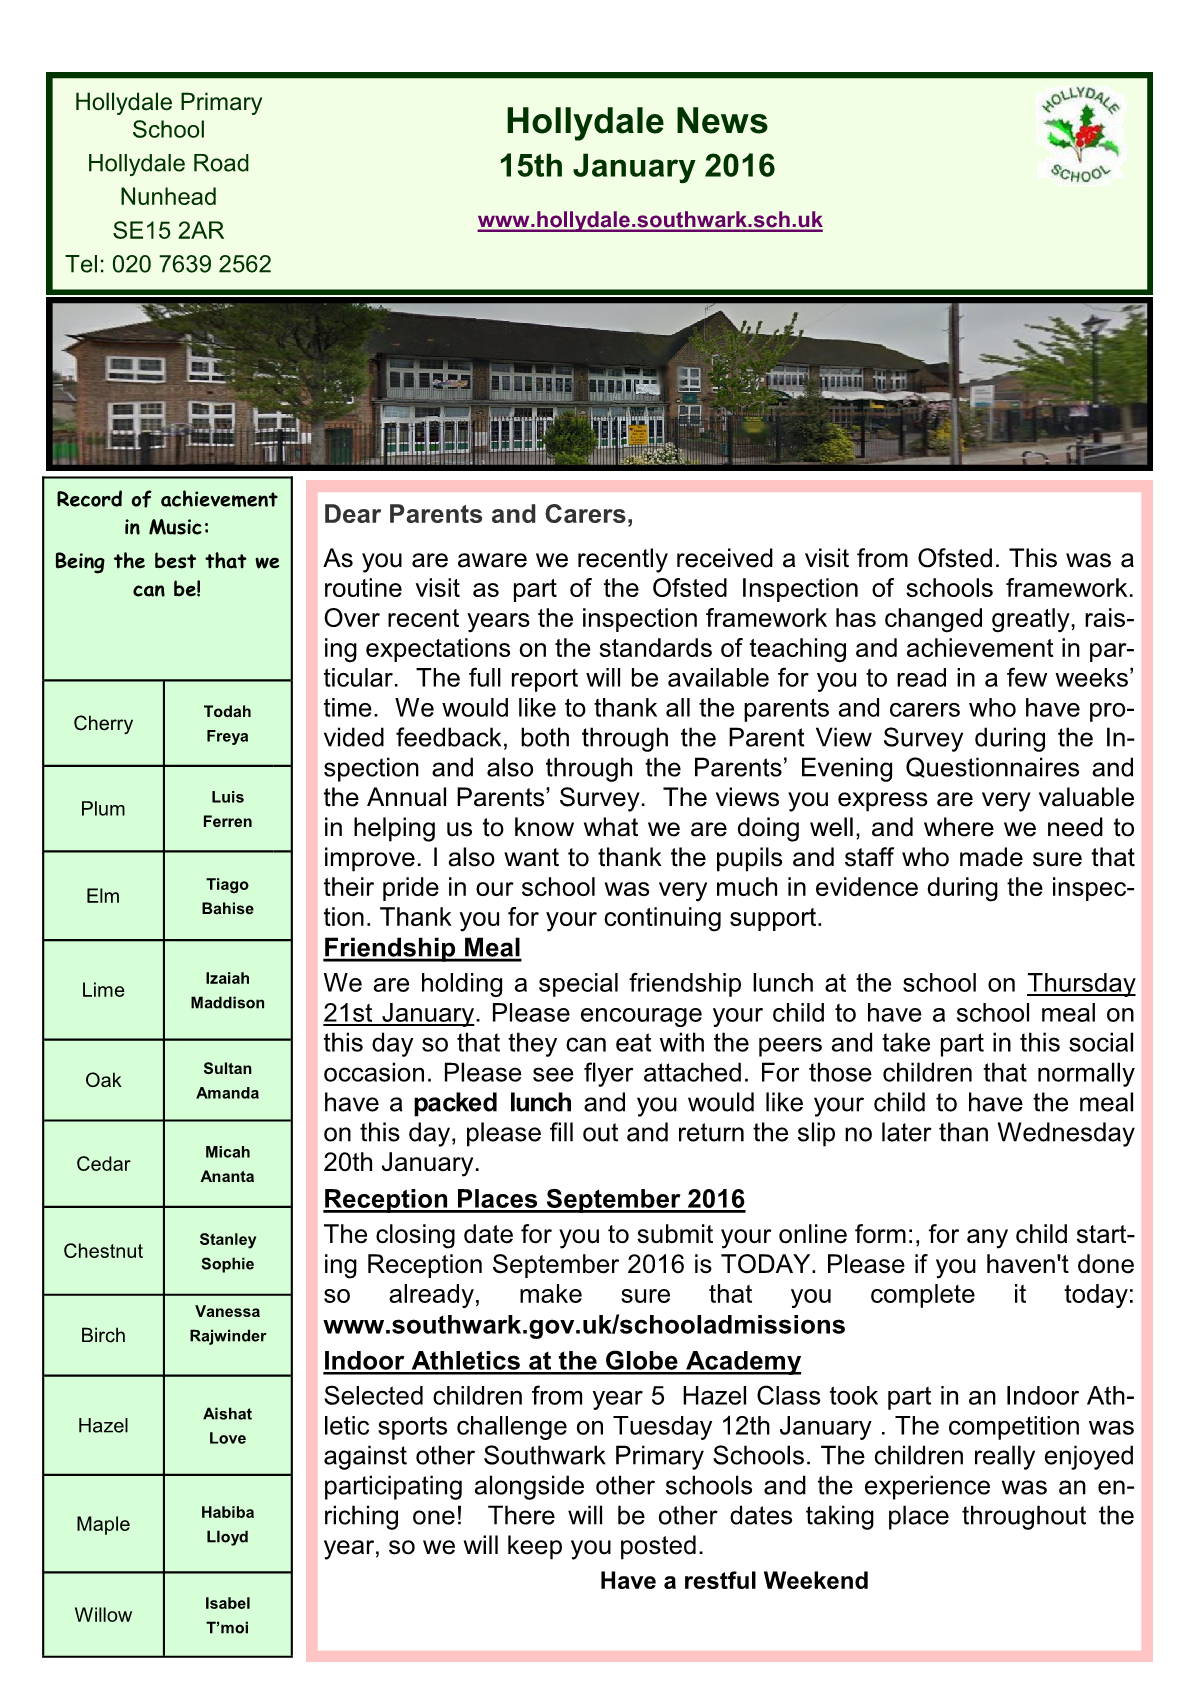 Newsletter 15th January 2016